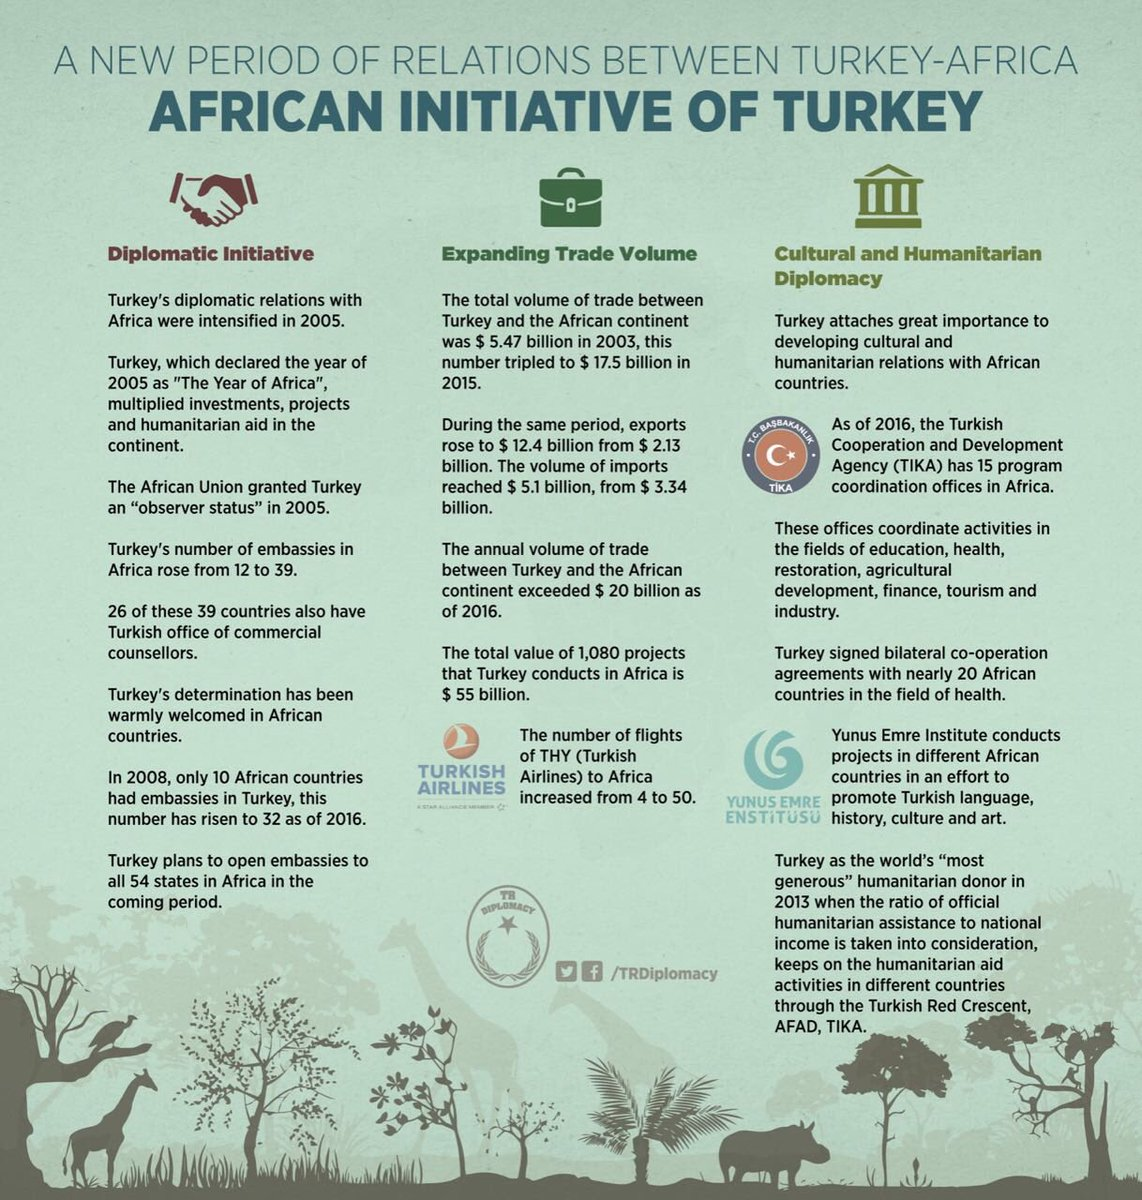 African Initiative of Turkey